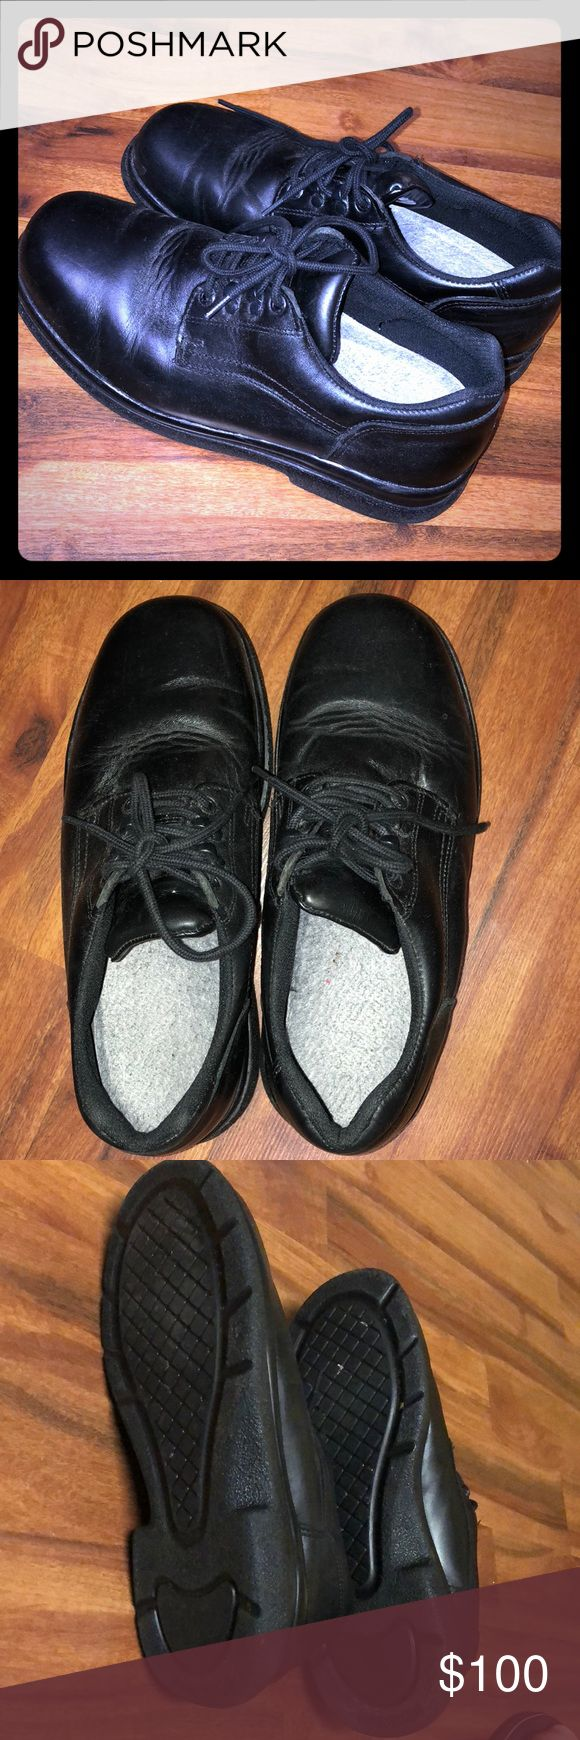 Red Wing Shoes Black laced Red Wing shoes. Excellent condition! - No flaws.  •ALL of my proceeds go to my son who is sick.•   🔴My prices are BEYOND fair. Please do not lowball me.🔴 Red Wing Shoes Shoes Oxfords & Derbys